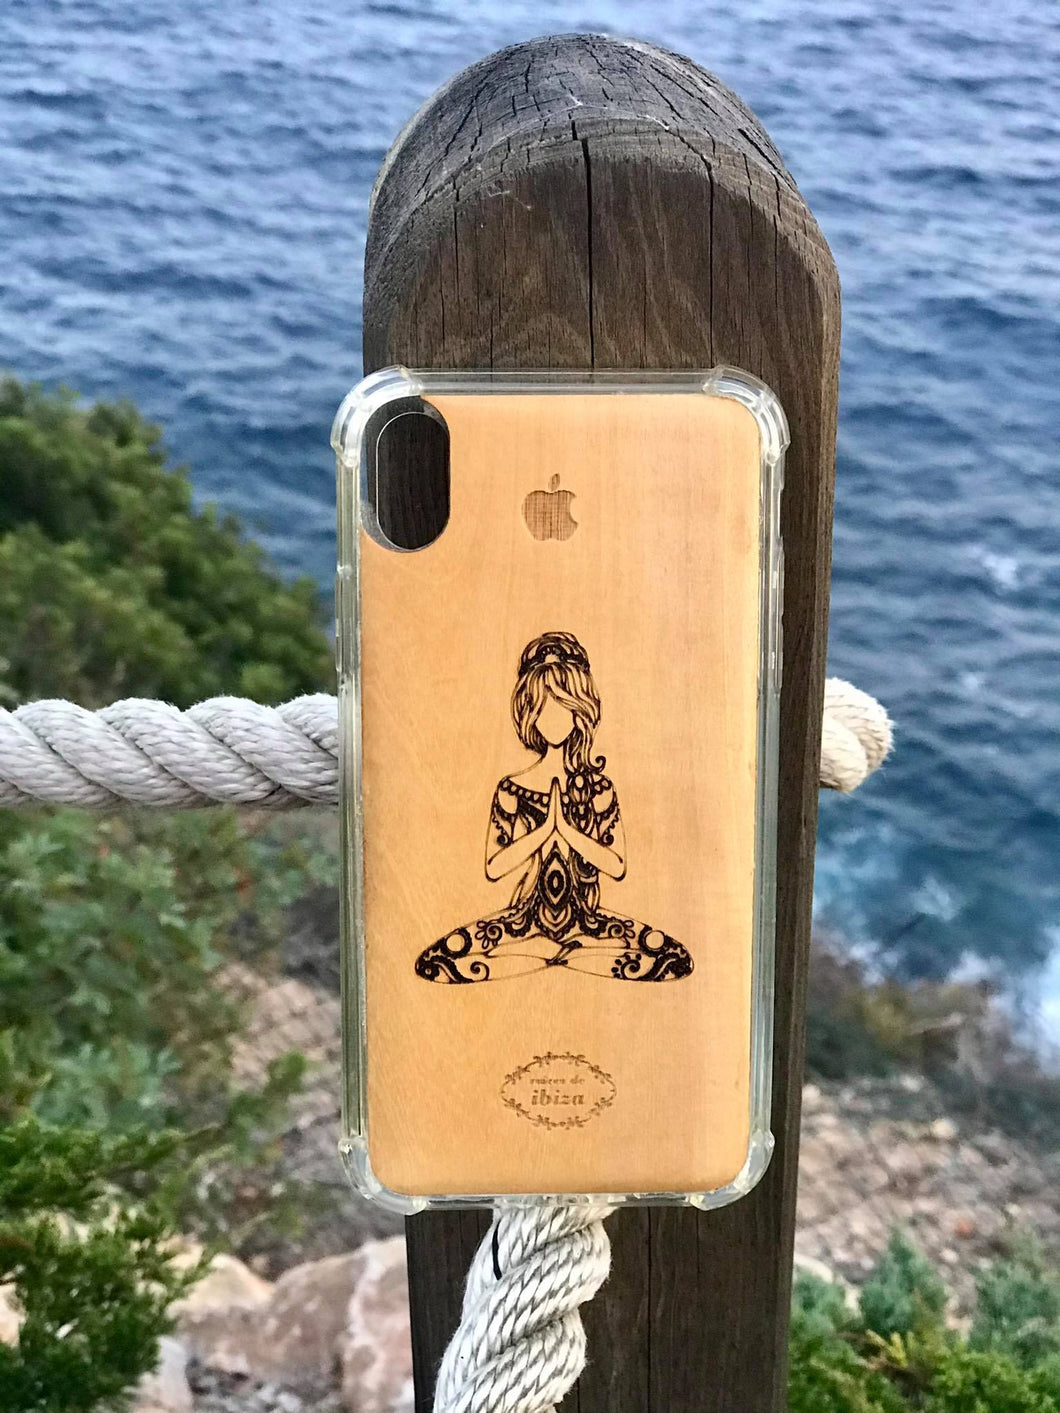 Handcrafted wooden iphone cases/fair trade/IBIZA